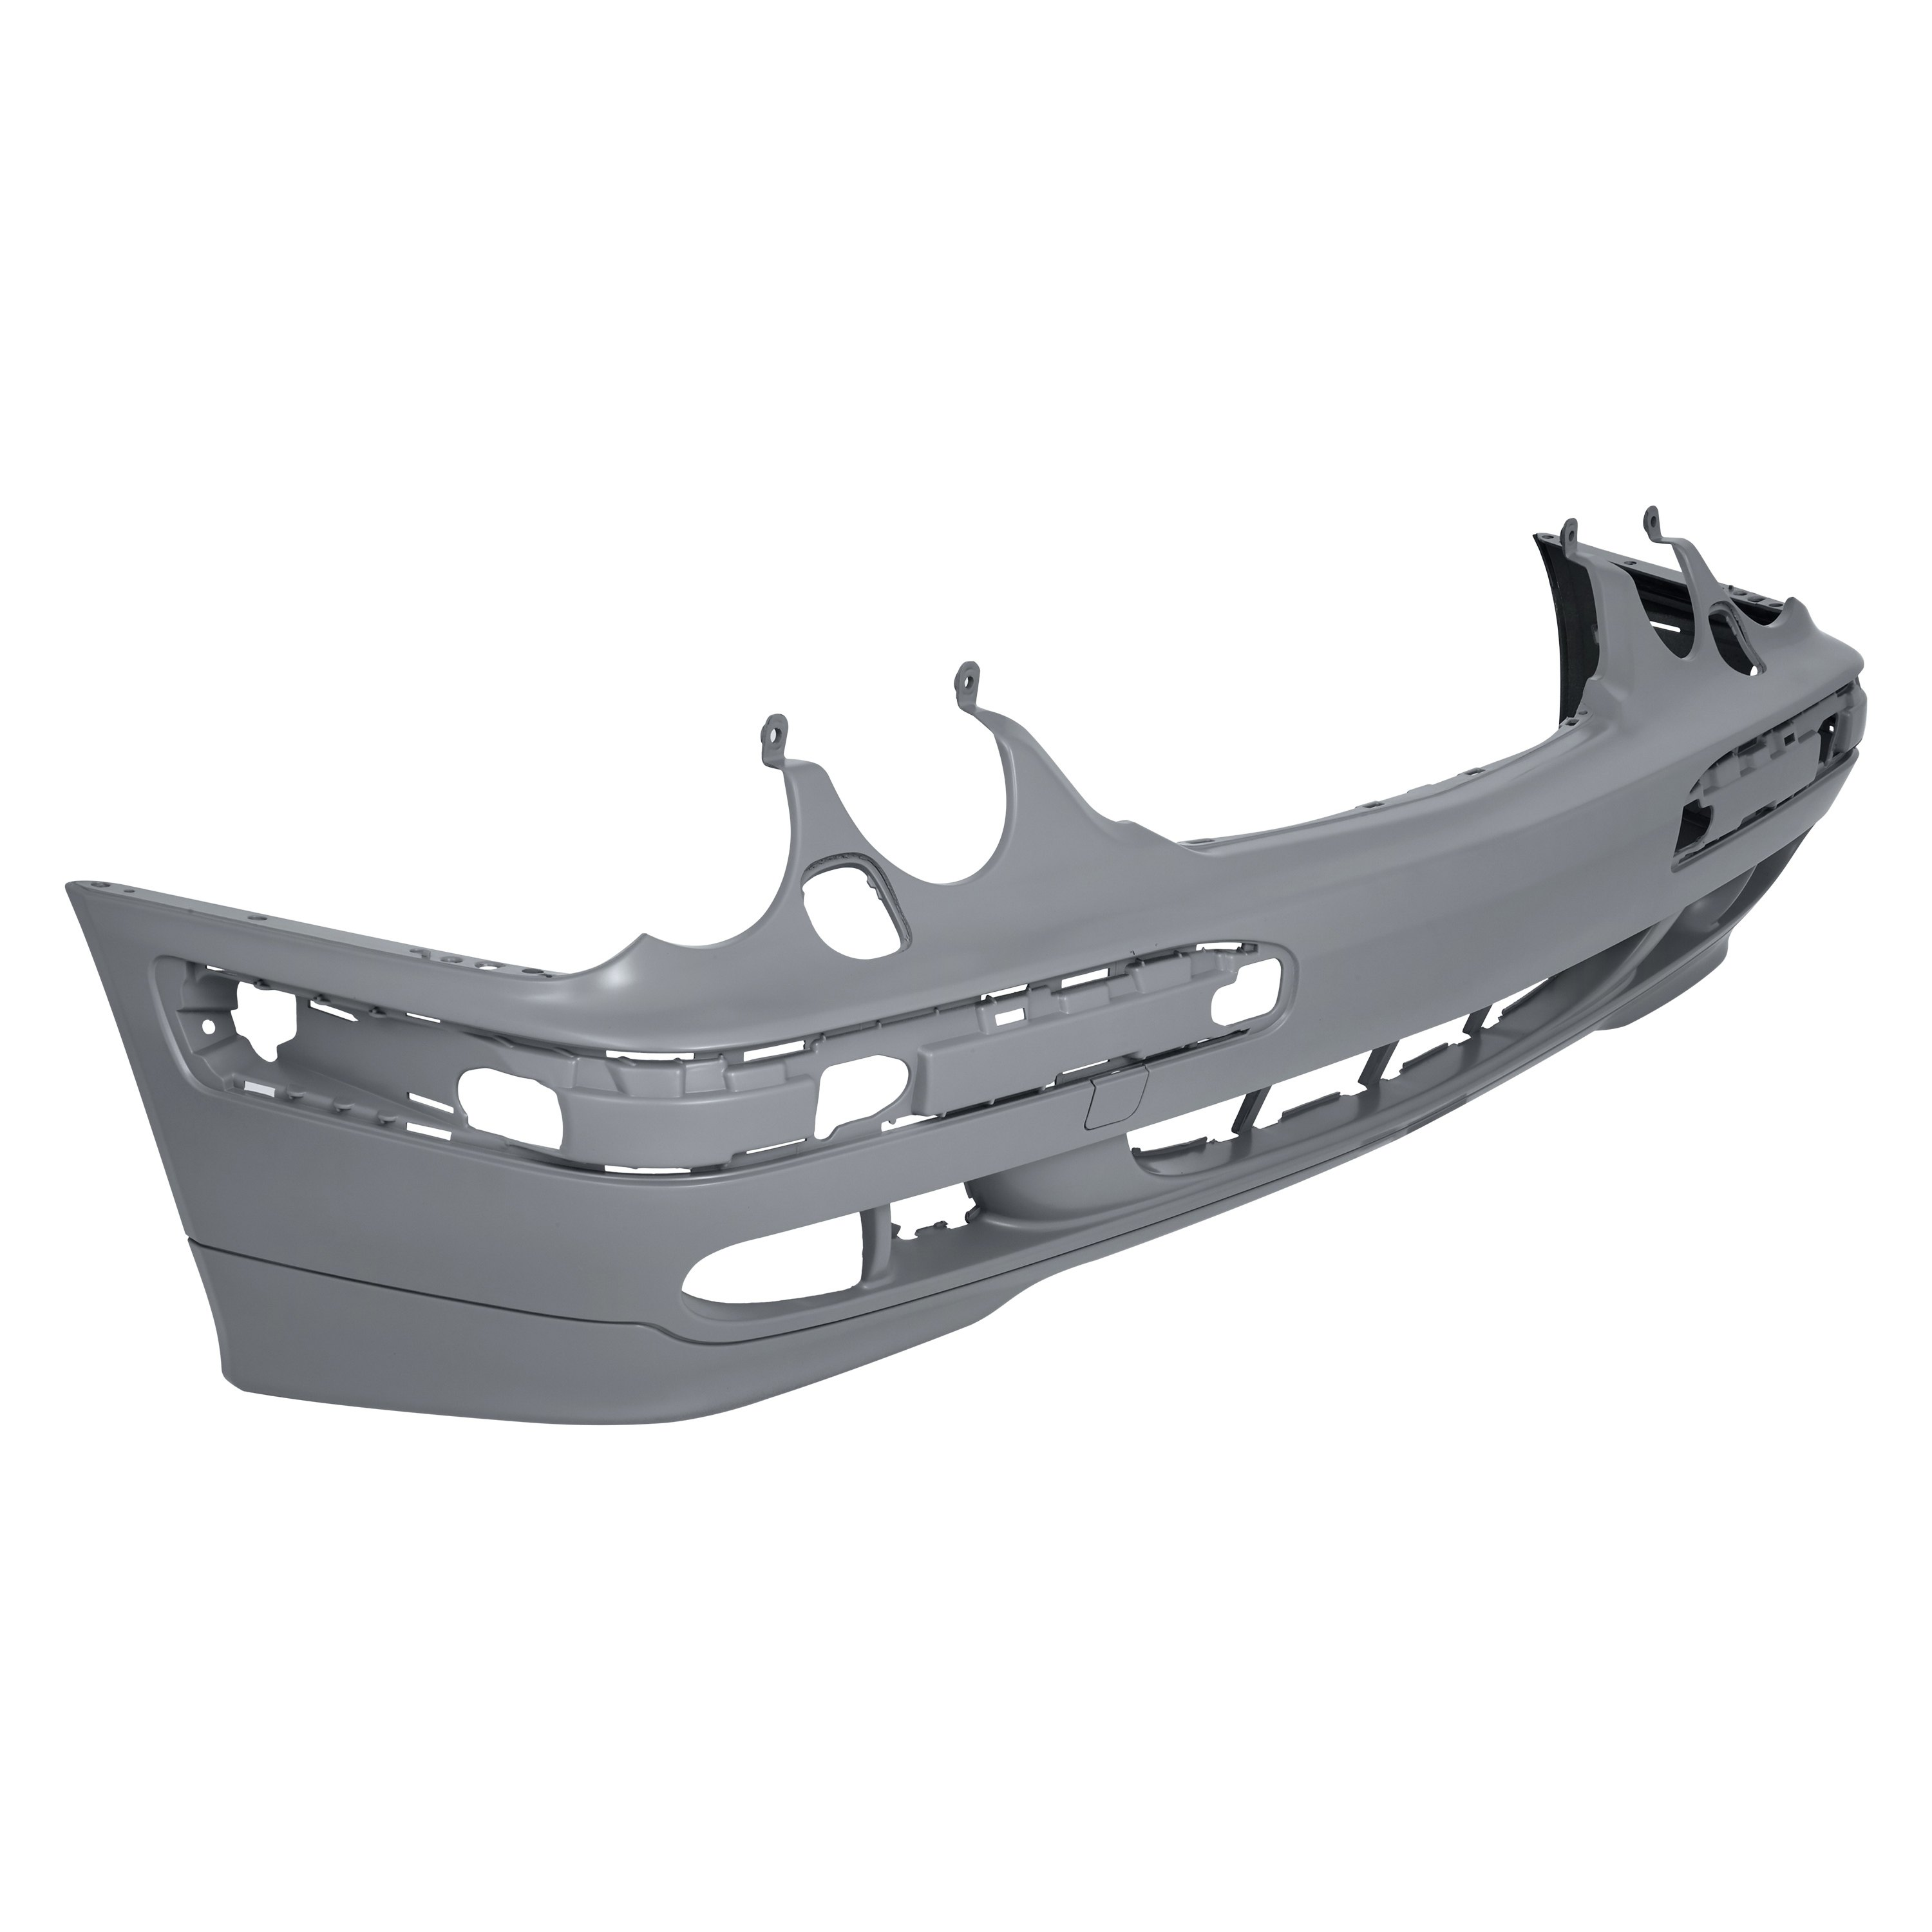 Front Bumper Cover For 2000-2003 Mercedes Benz E320 Primed Plastic